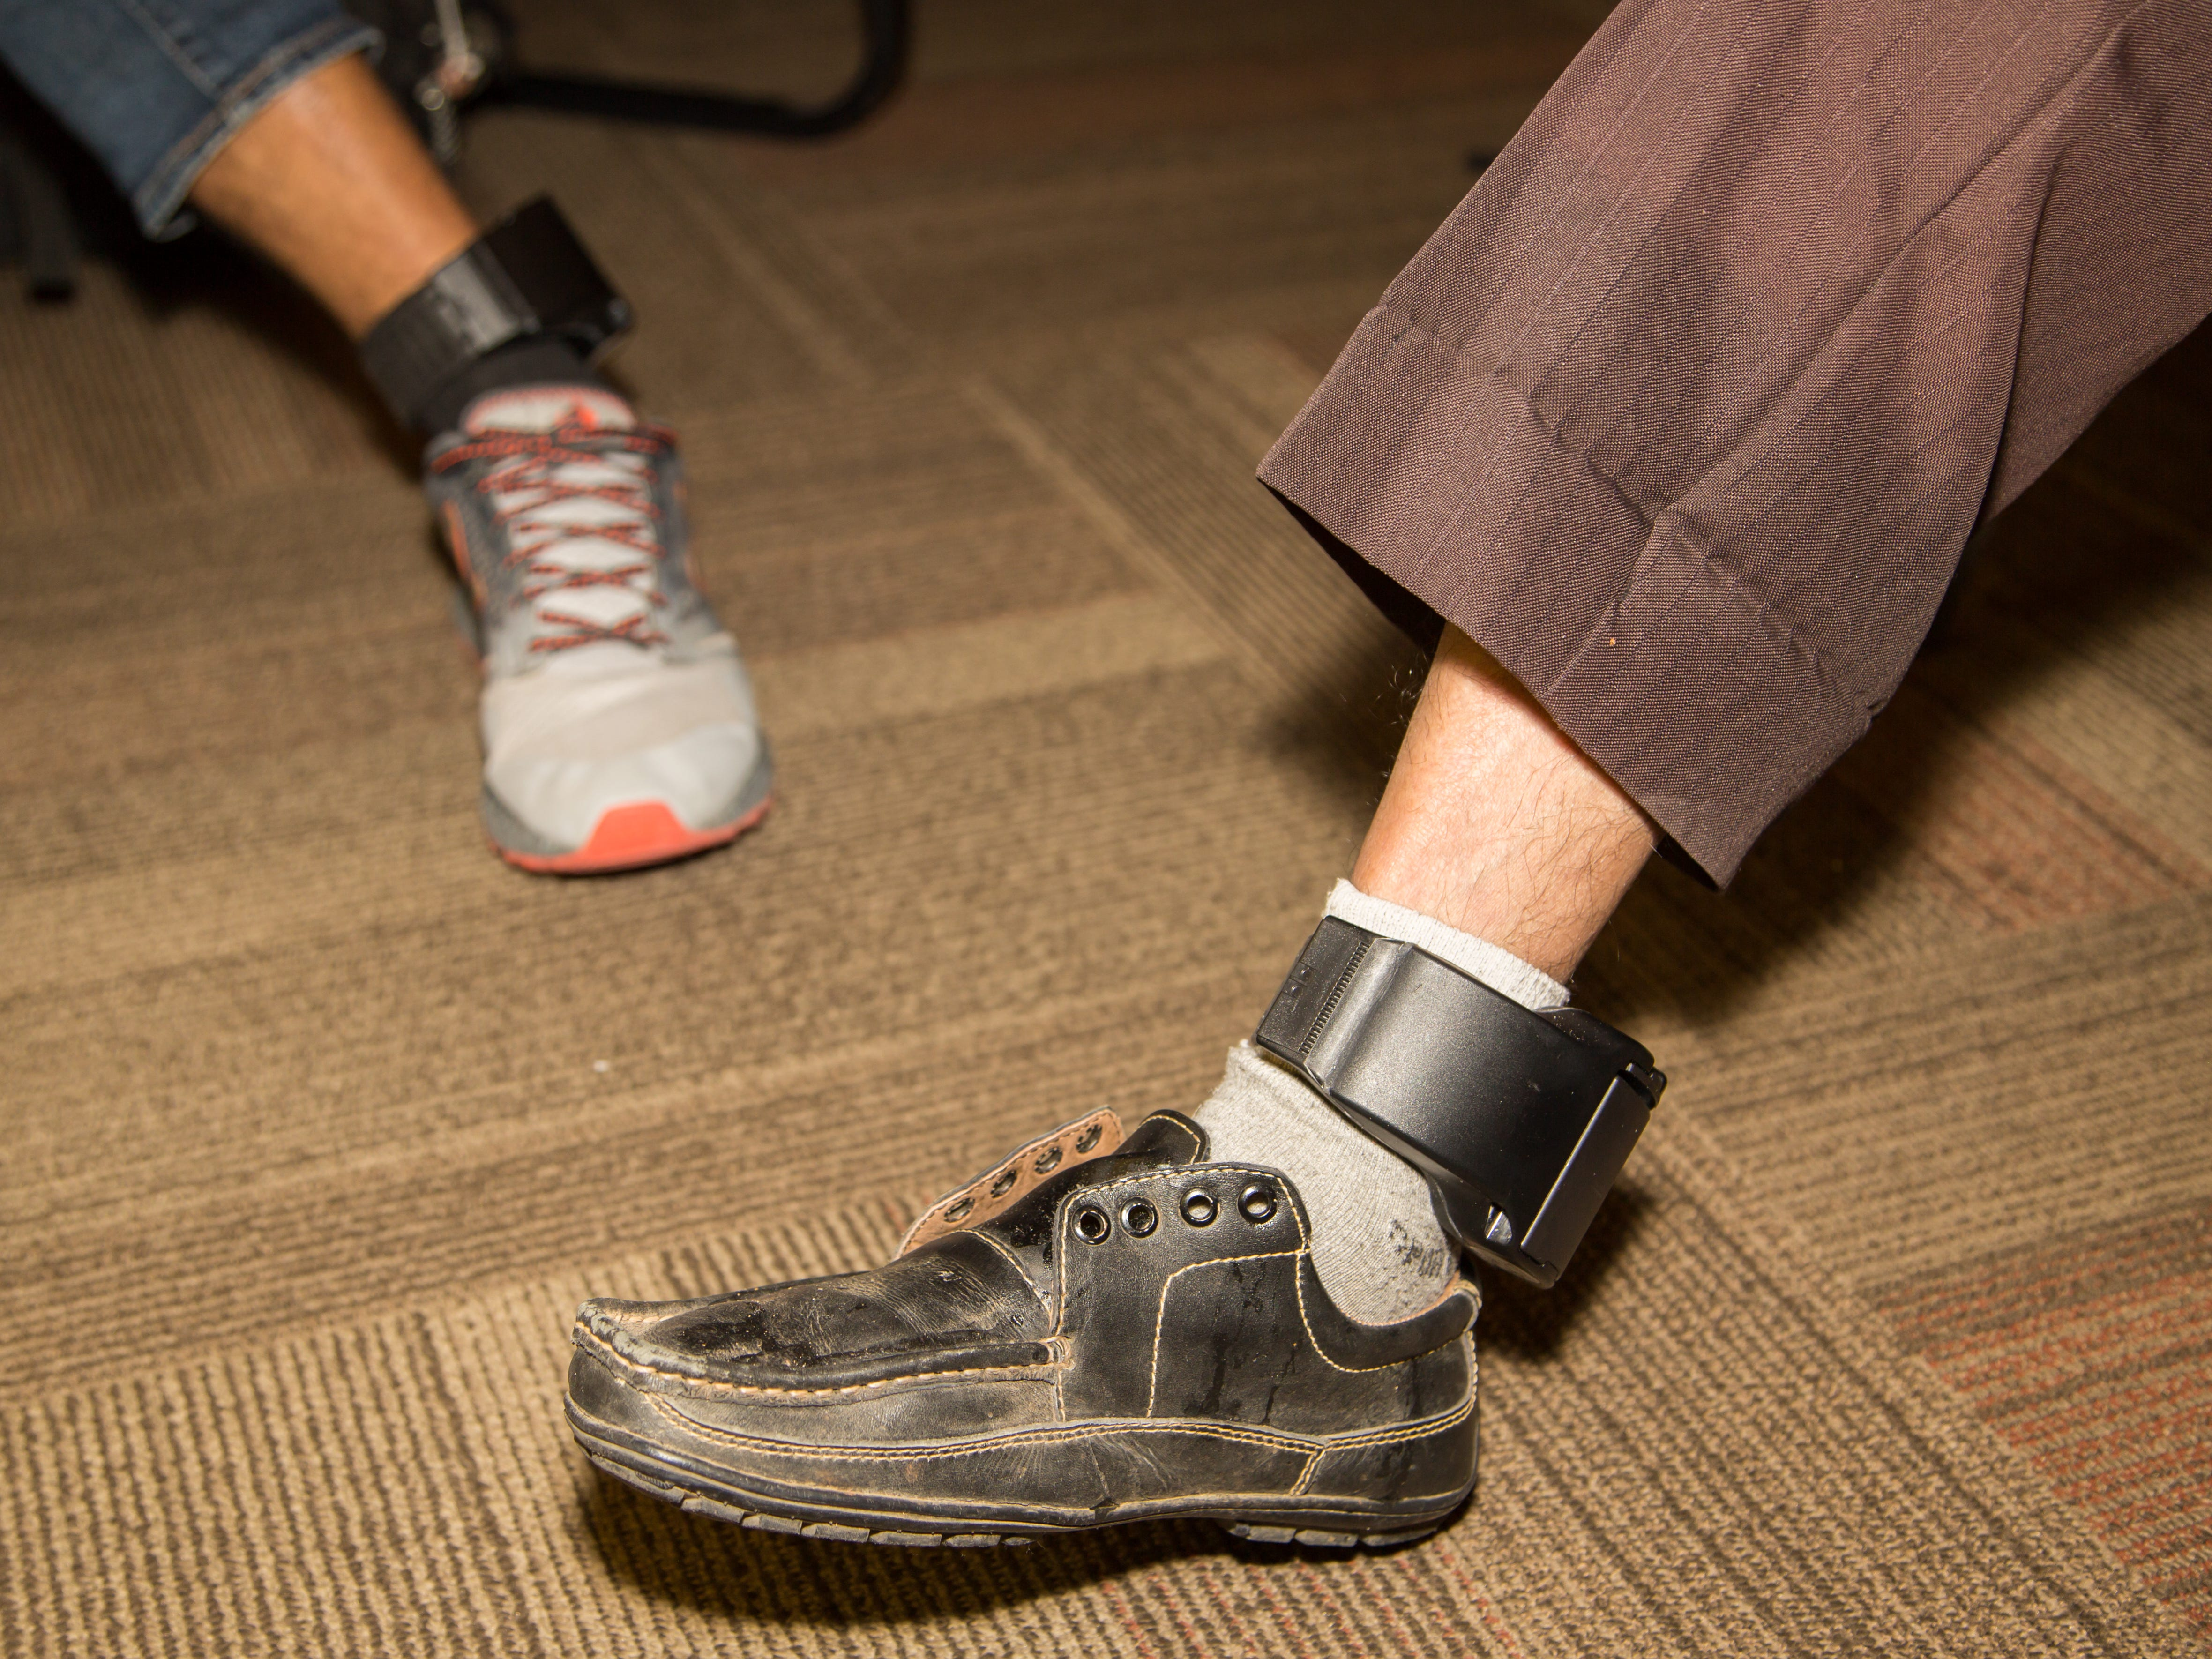 A migrant with an ankle monitor and no shoelaces.